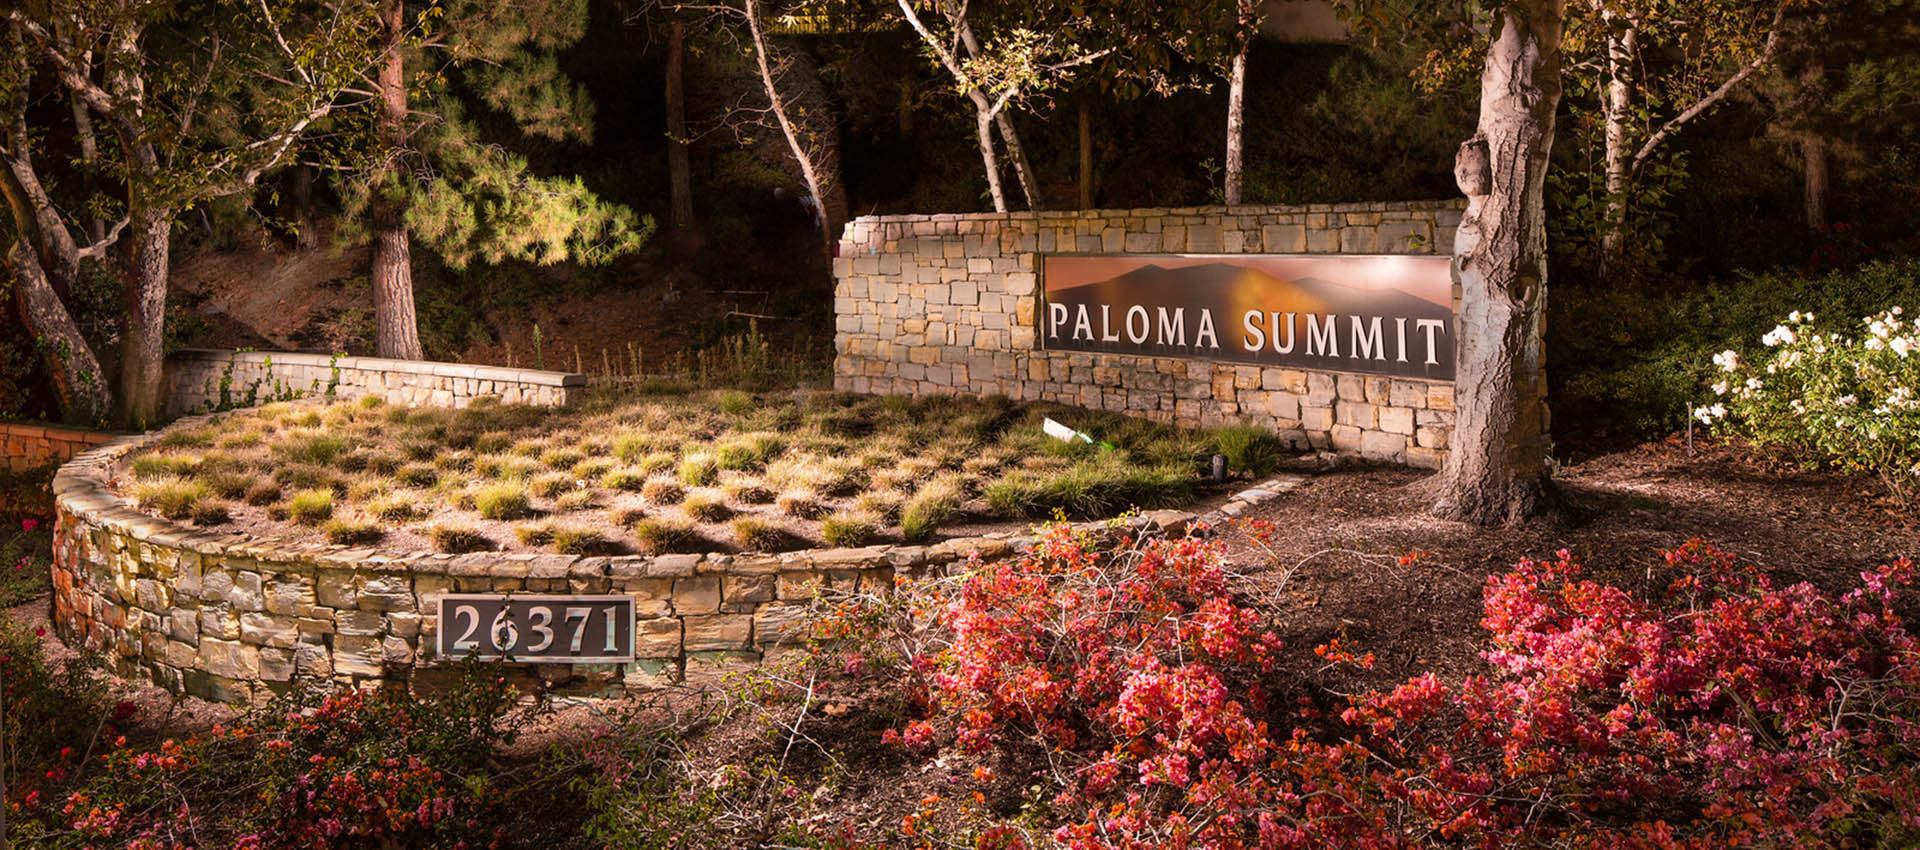 Signage at Paloma Summit Condominium Rentals in Foothill Ranch, CA